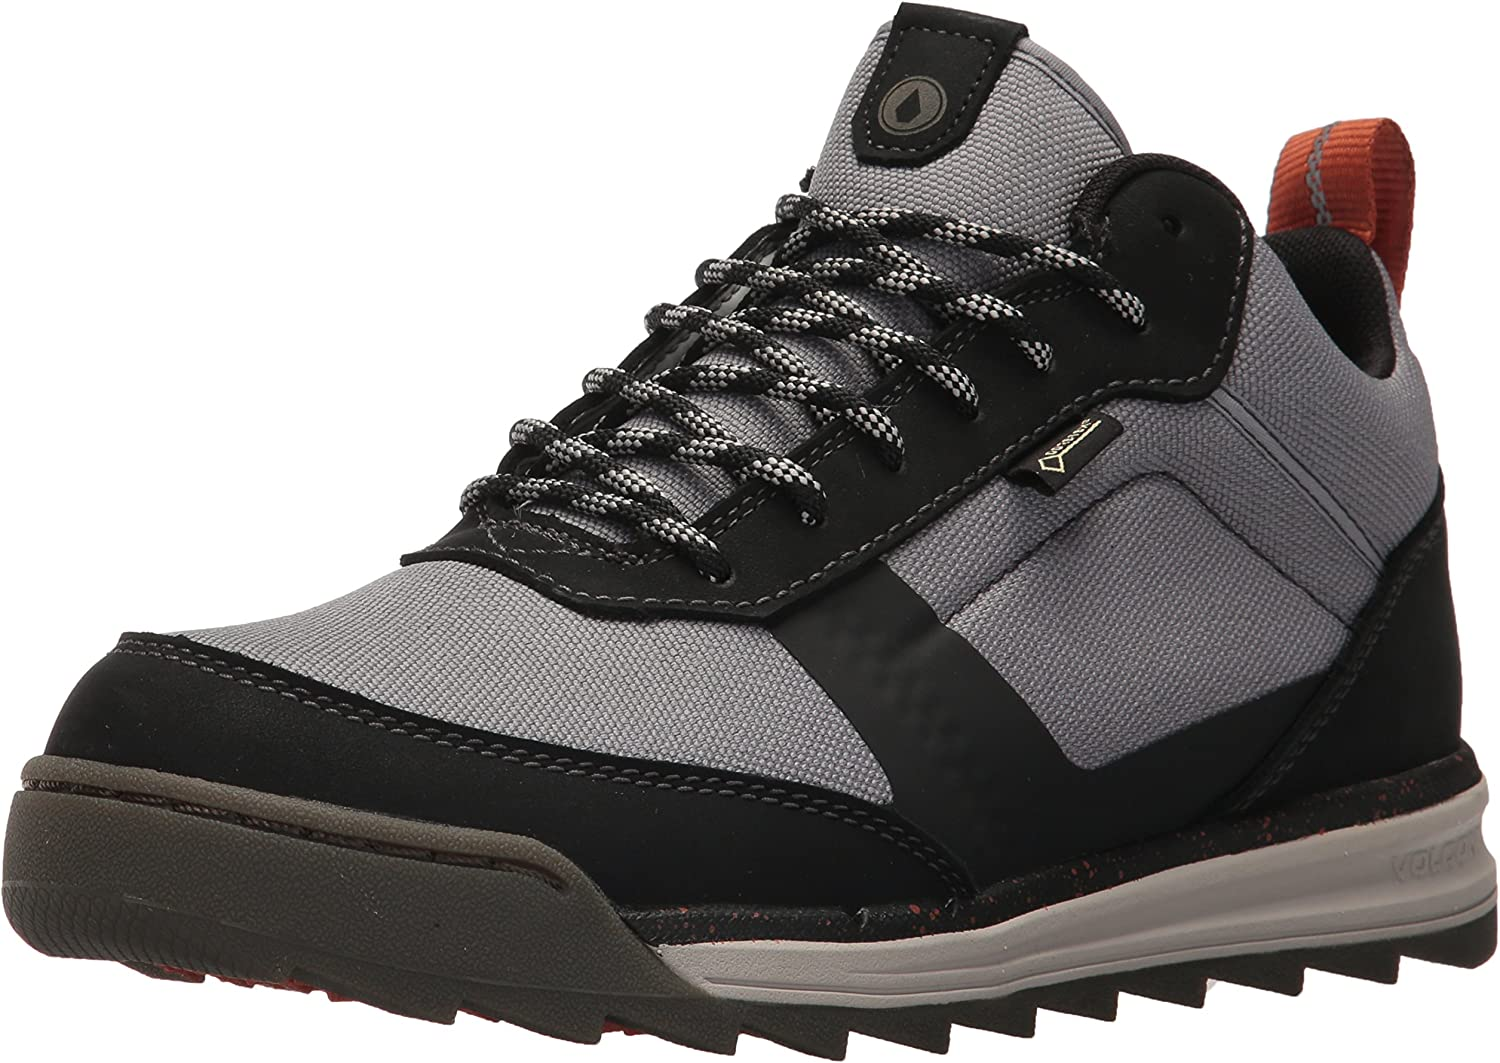 Volcom Kensington Gtx Boot -Fall 2017- Slate Grey